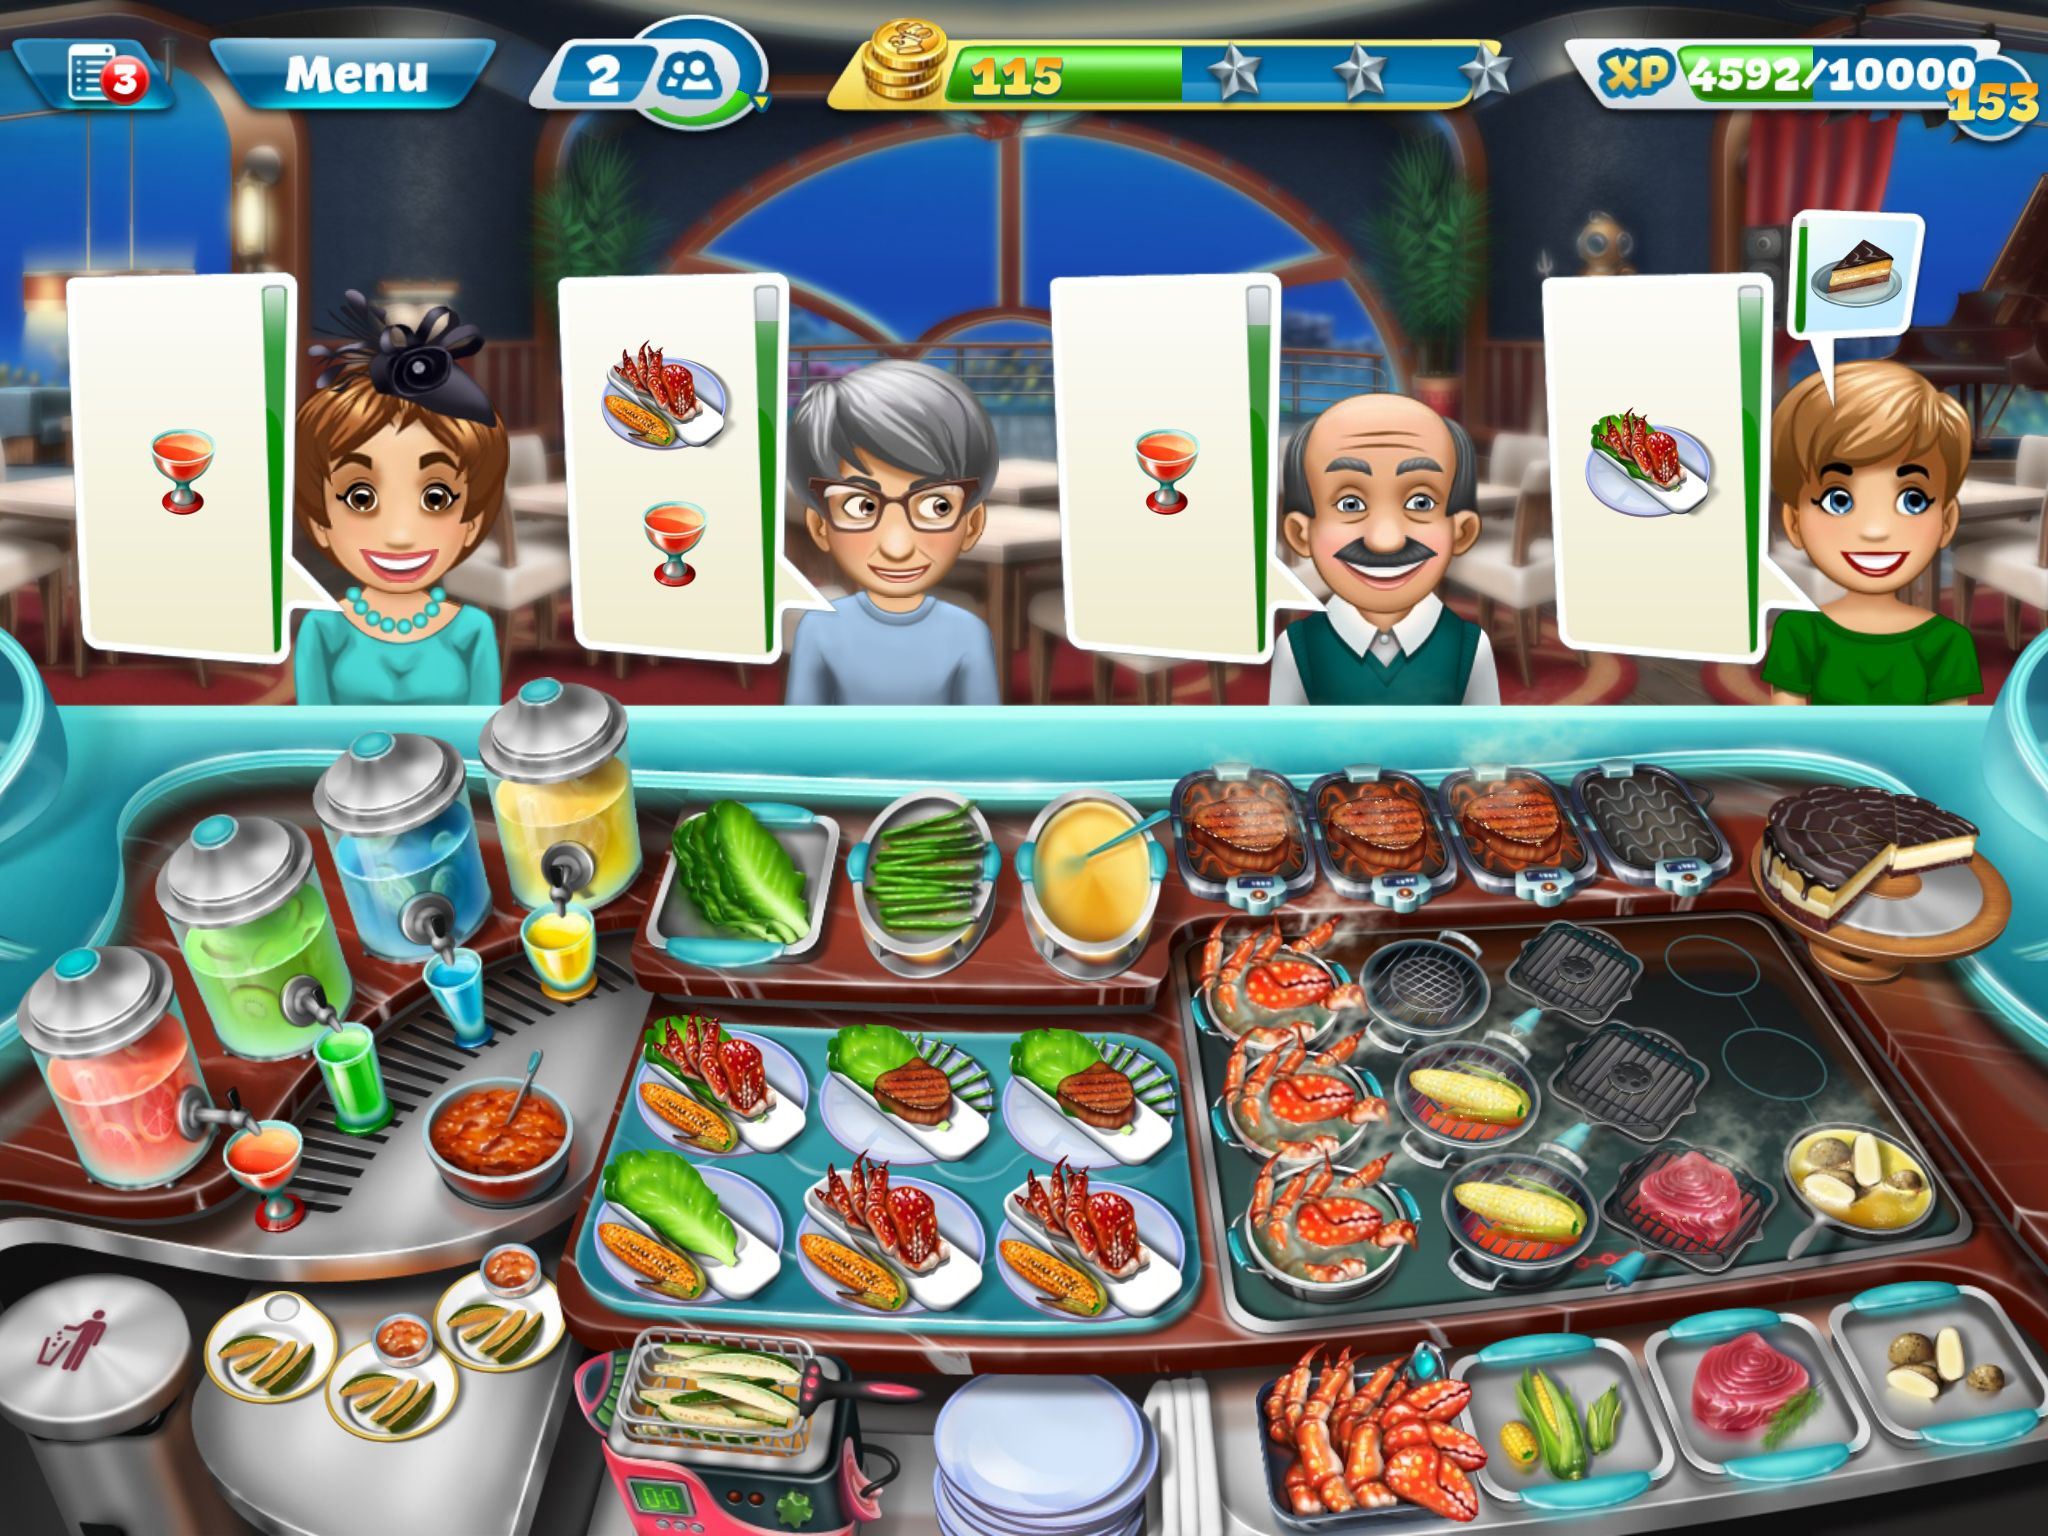 Set out on an undersea adventure in the latest Cooking Fever update